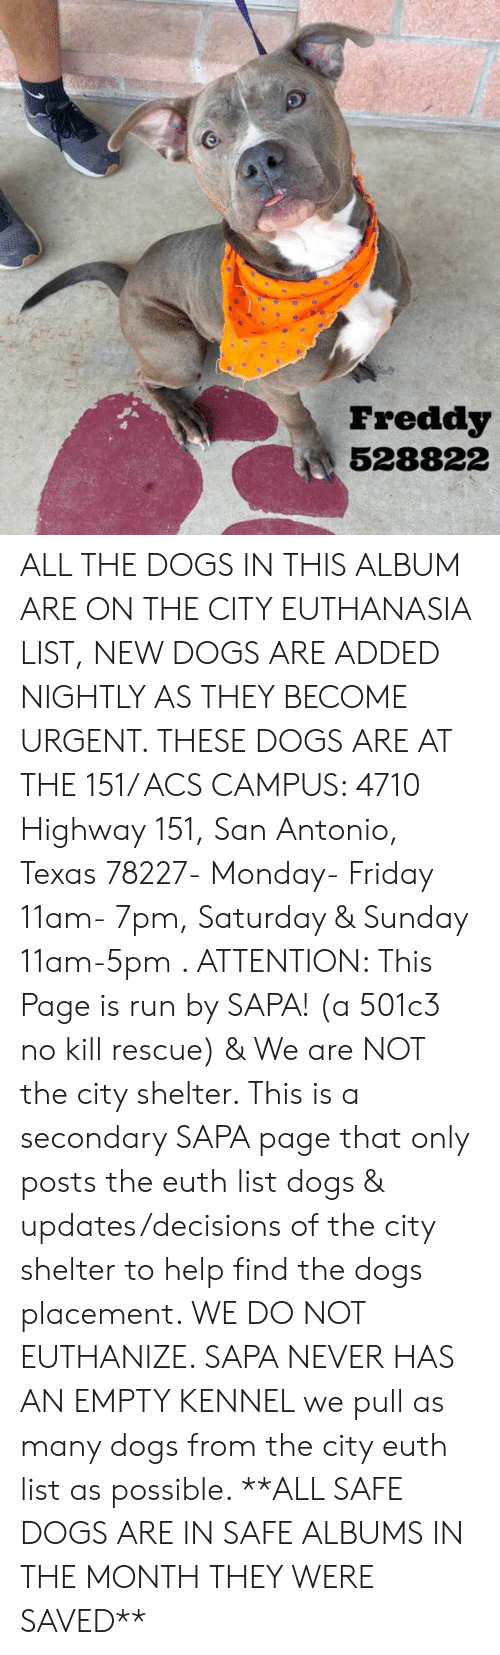 Dogs, Friday, and Memes: Freddy  528822 ALL THE DOGS IN THIS ALBUM ARE ON THE CITY EUTHANASIA LIST, NEW DOGS ARE ADDED NIGHTLY AS THEY BECOME URGENT.  THESE DOGS ARE AT THE 151/ ACS CAMPUS: 4710 Highway 151, San Antonio, Texas 78227- Monday- Friday 11am- 7pm, Saturday & Sunday 11am-5pm  .                                                                                                                                                                                                                                                     ATTENTION: This Page is run by SAPA! (a 501c3 no kill rescue) & We are NOT the city shelter. This is a secondary SAPA page that only posts the euth list dogs & updates/decisions of the city shelter to help find the dogs placement. WE DO NOT EUTHANIZE.  SAPA NEVER HAS AN EMPTY KENNEL we pull as many dogs from the city euth list as possible.      **ALL SAFE DOGS ARE IN SAFE ALBUMS IN THE MONTH THEY WERE SAVED**